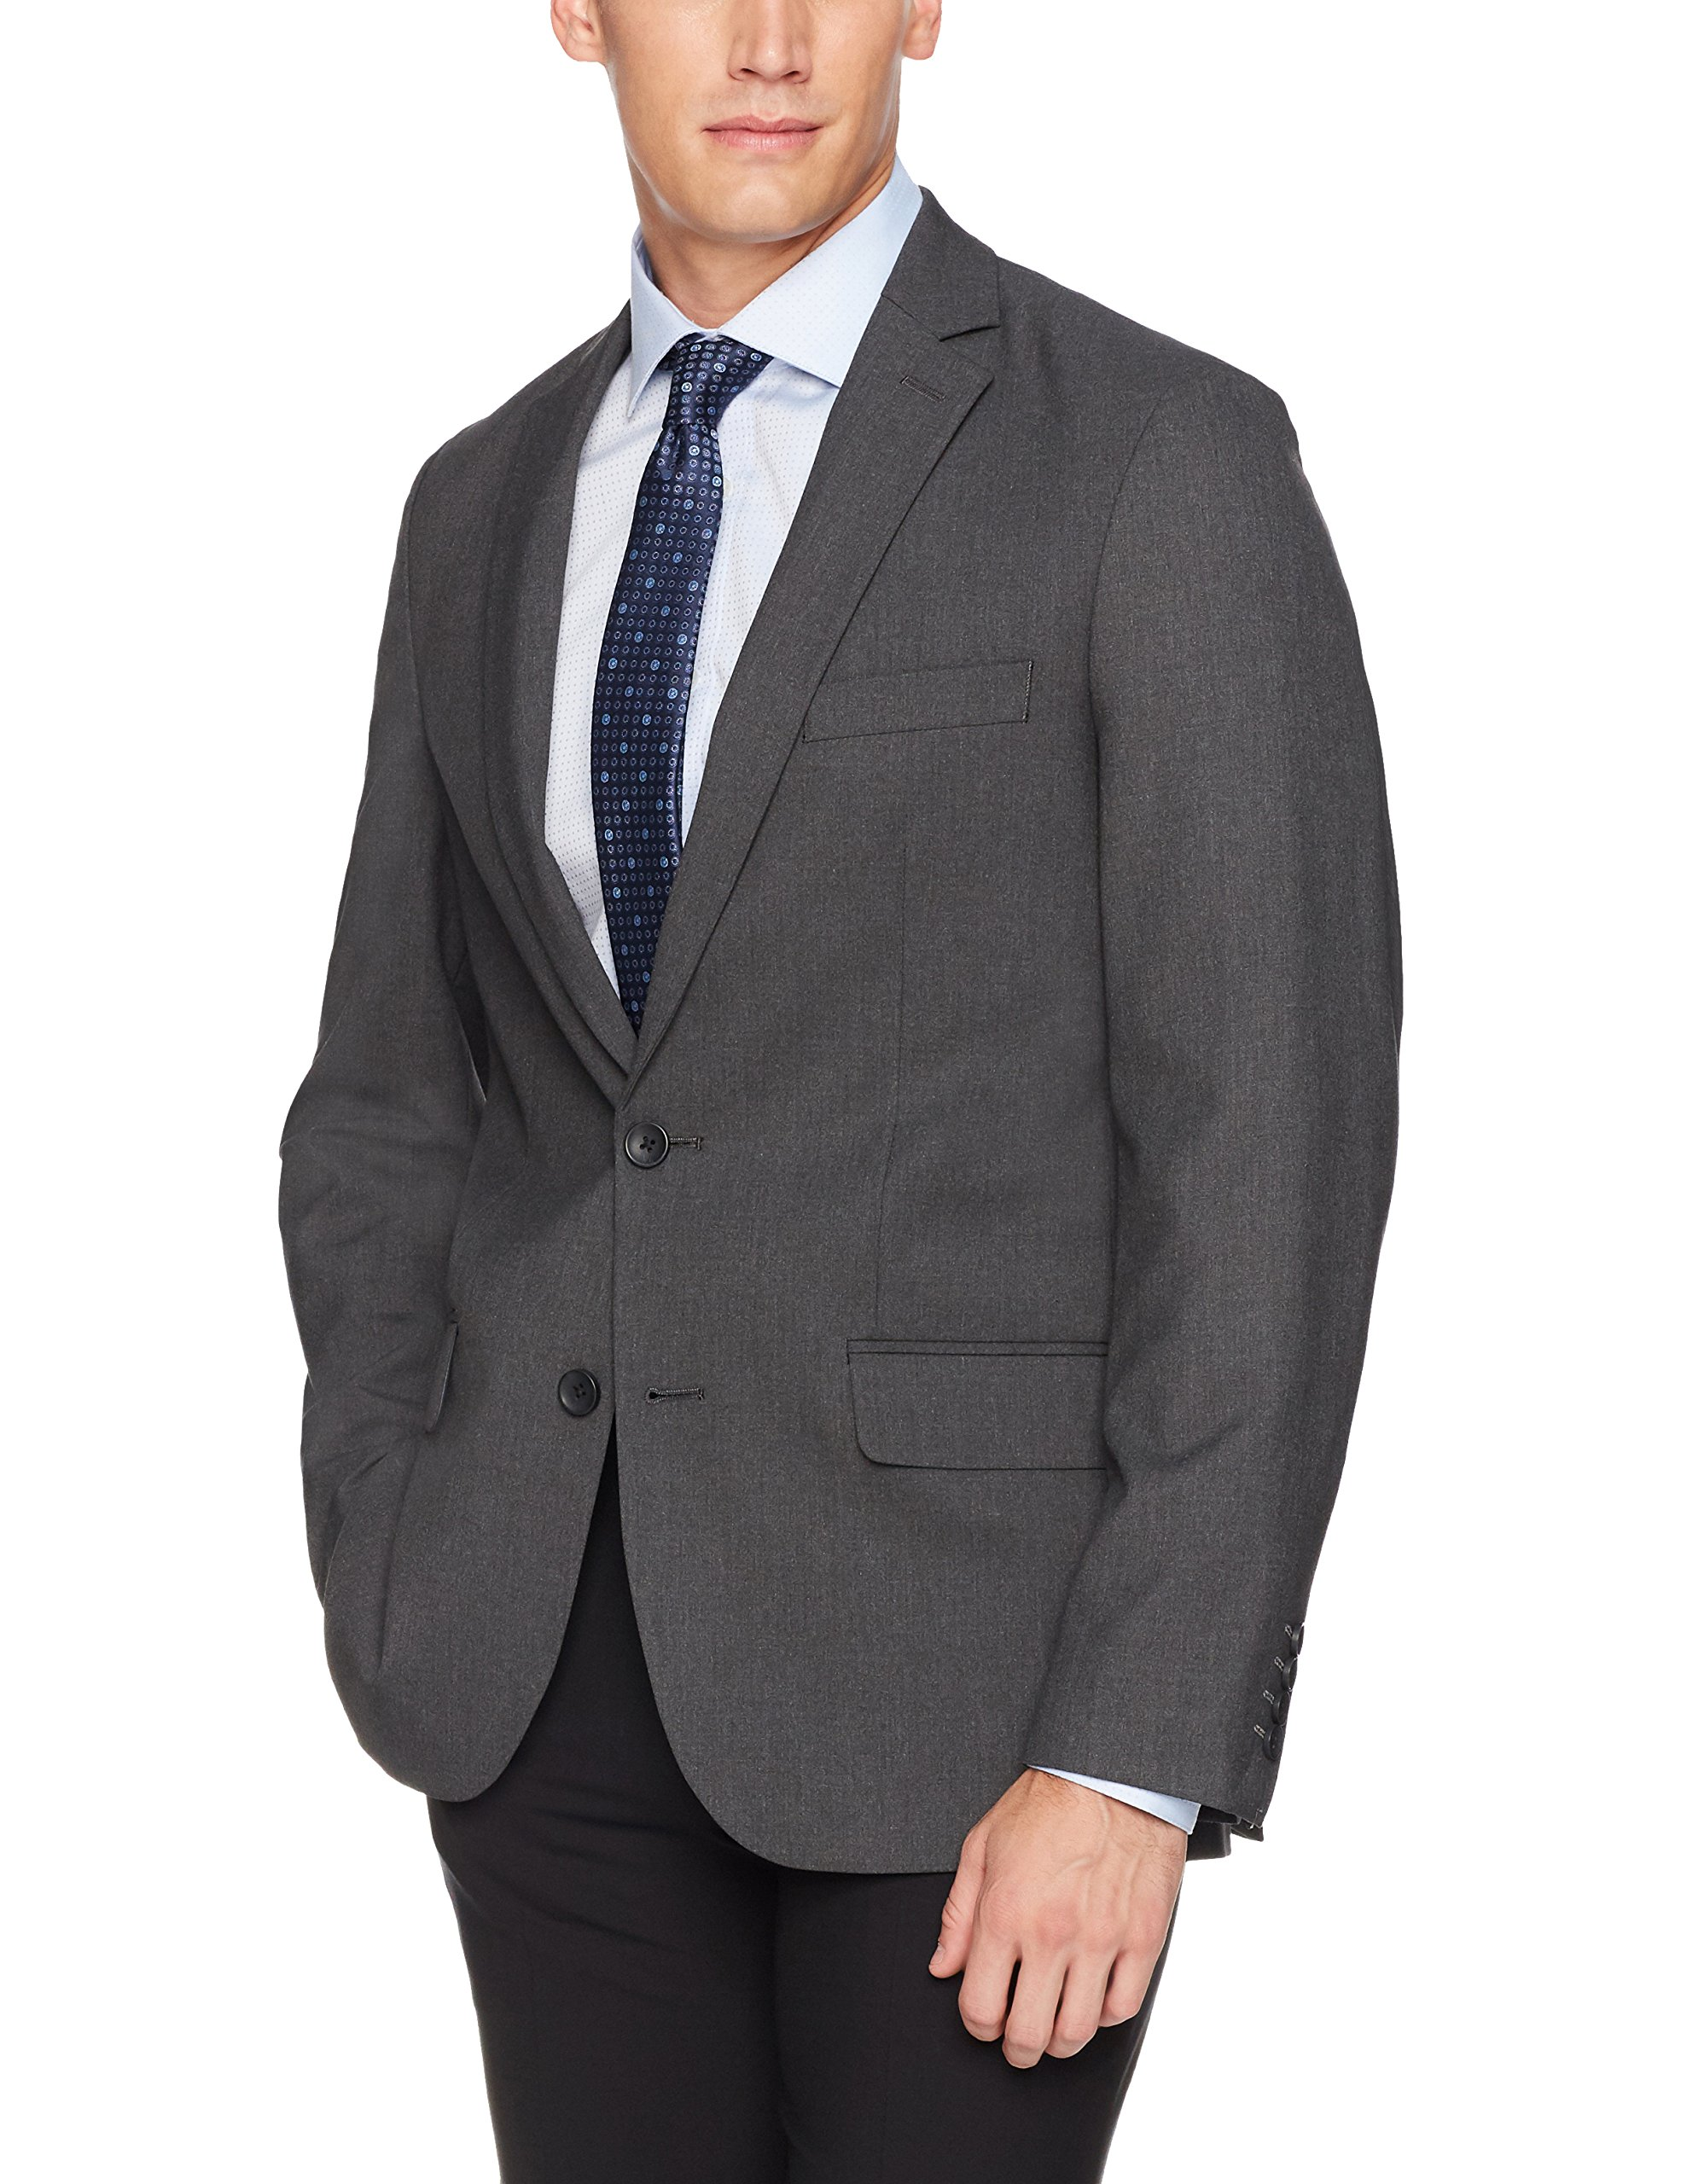 J.M. Haggar 4-Way Stretch Solid 2-Button Slim Fit Suit Separate Coat,  Charcoal Heather,  46R by J.M. Haggar